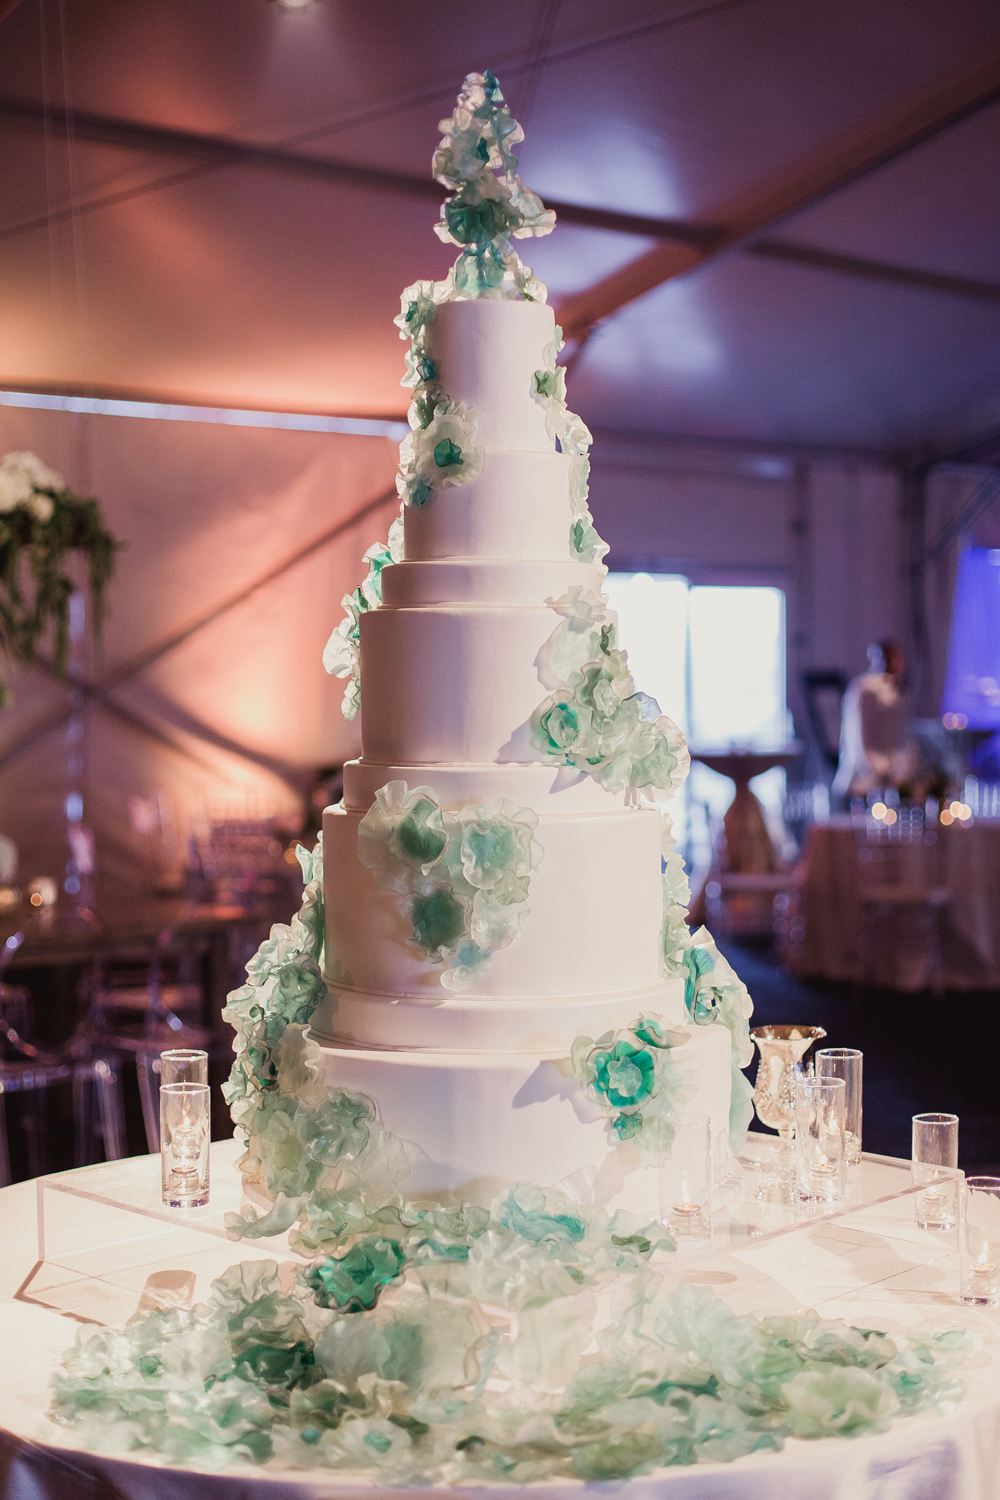 White tall wedding cake with blue and green clear flower designs art inspired